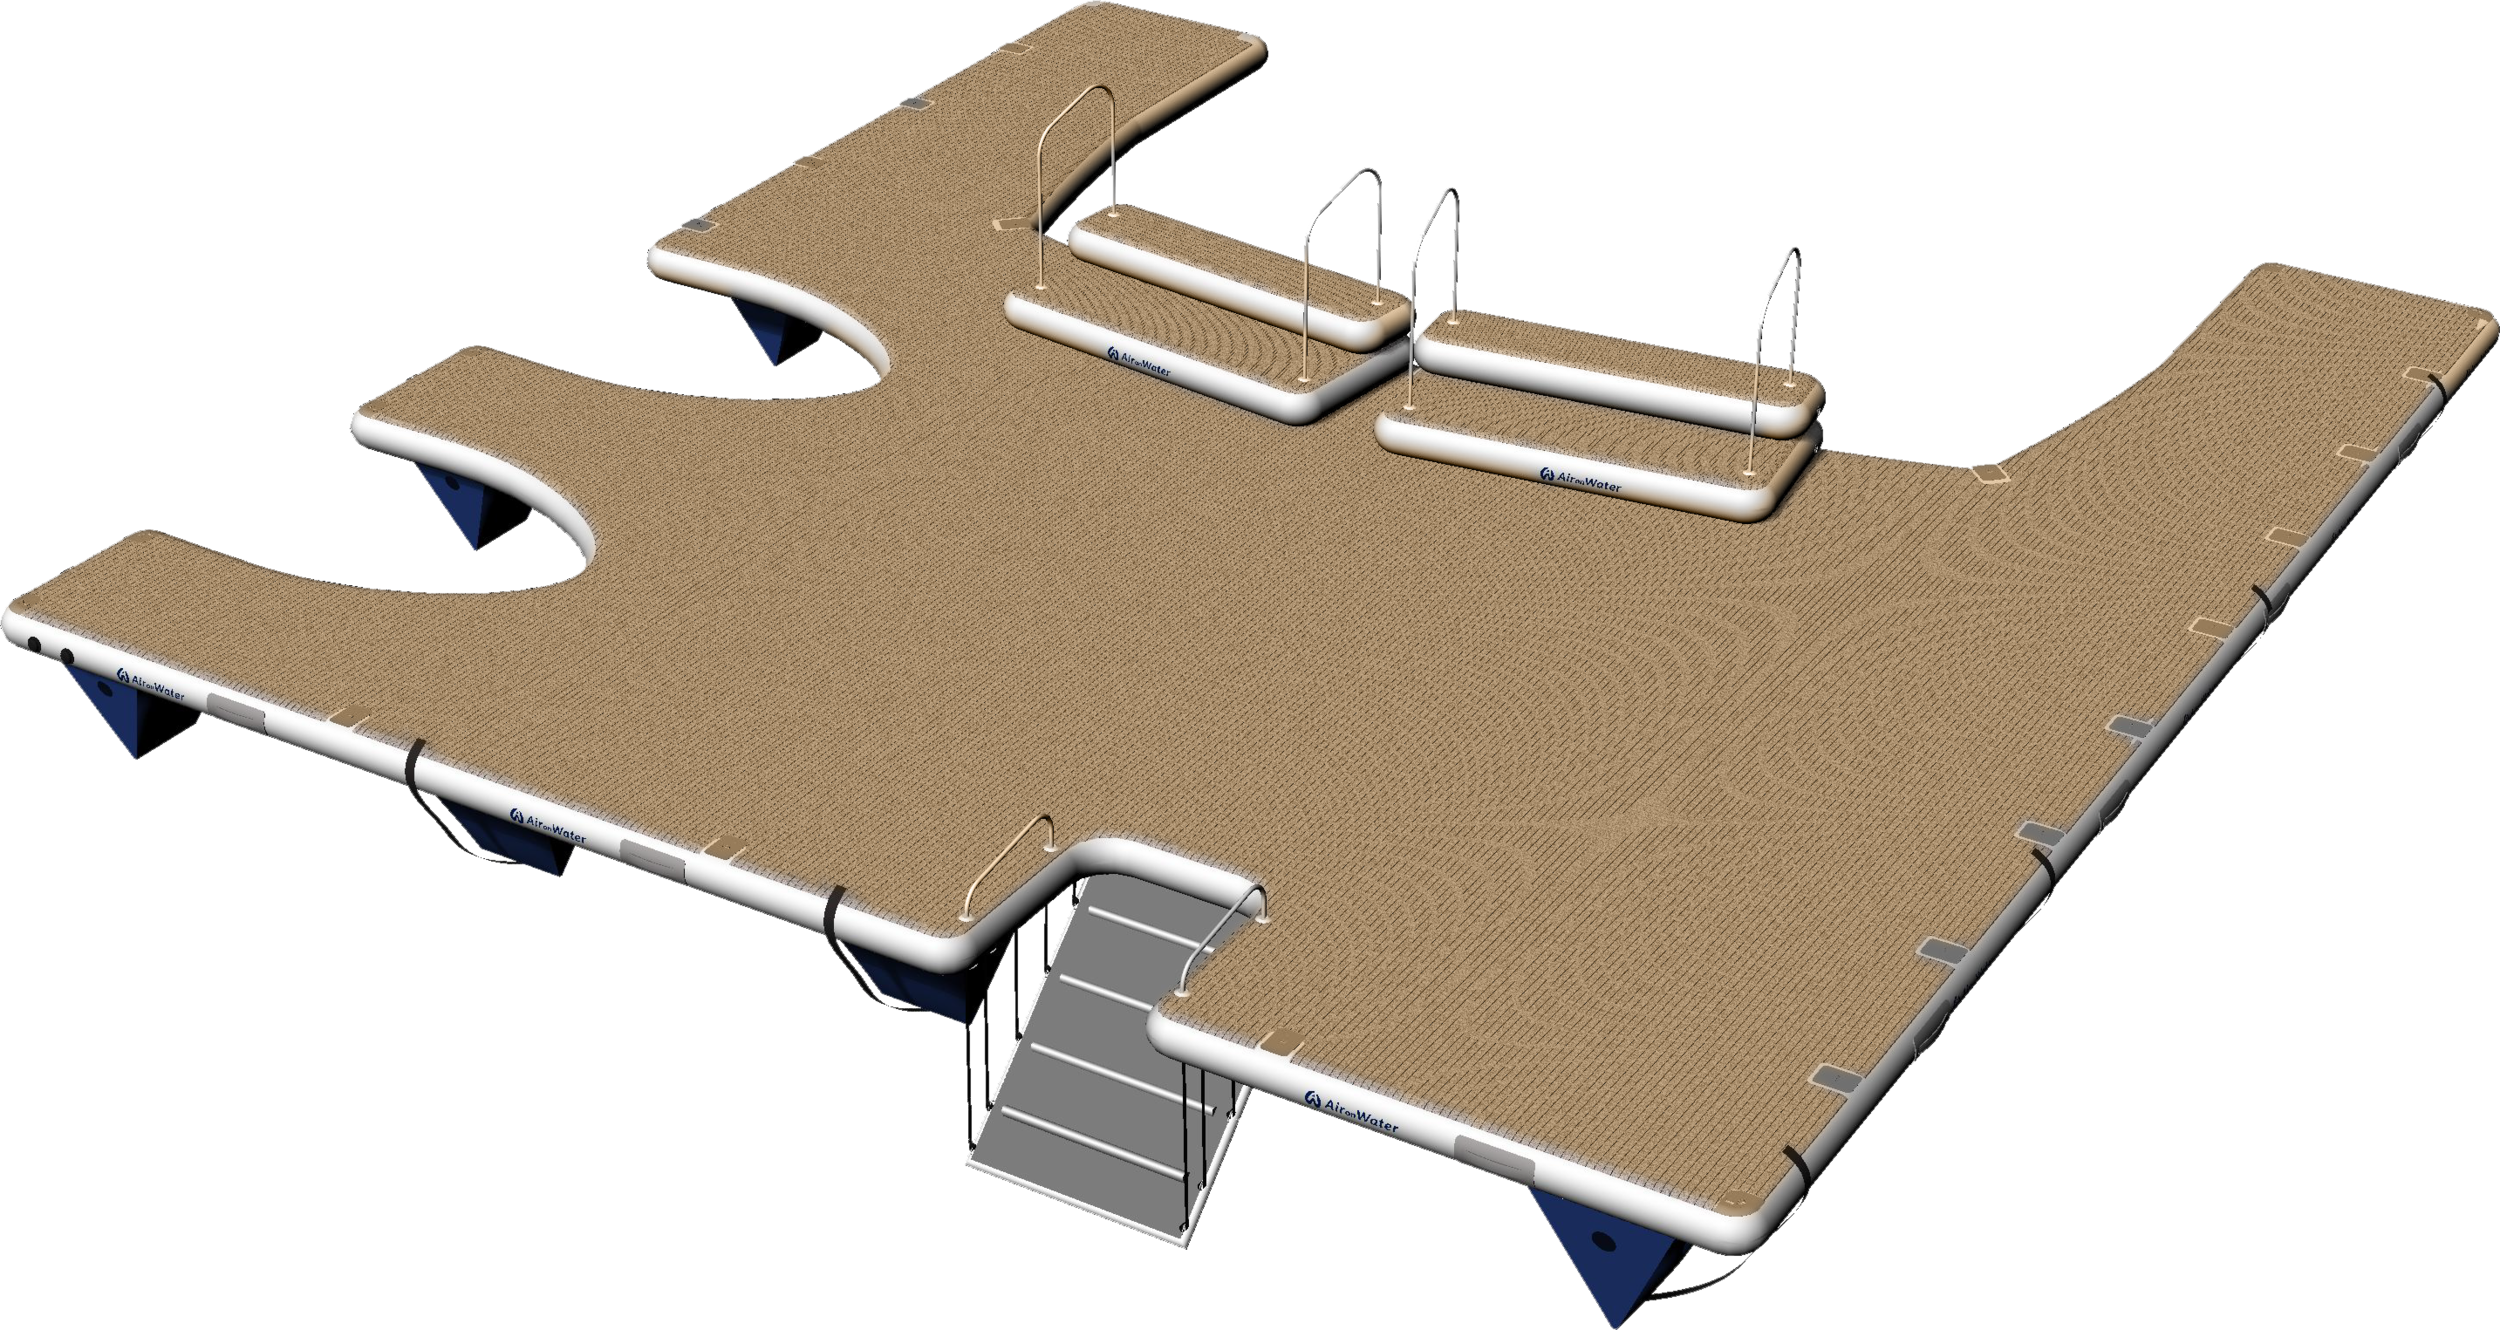 This platform 8.7M wide x 9.0M deep is Custom Designed to fit the yachts stern profile with stairs to transom height, submerged access ladder, 2 jet ski ports and tender docking to the starboard side.